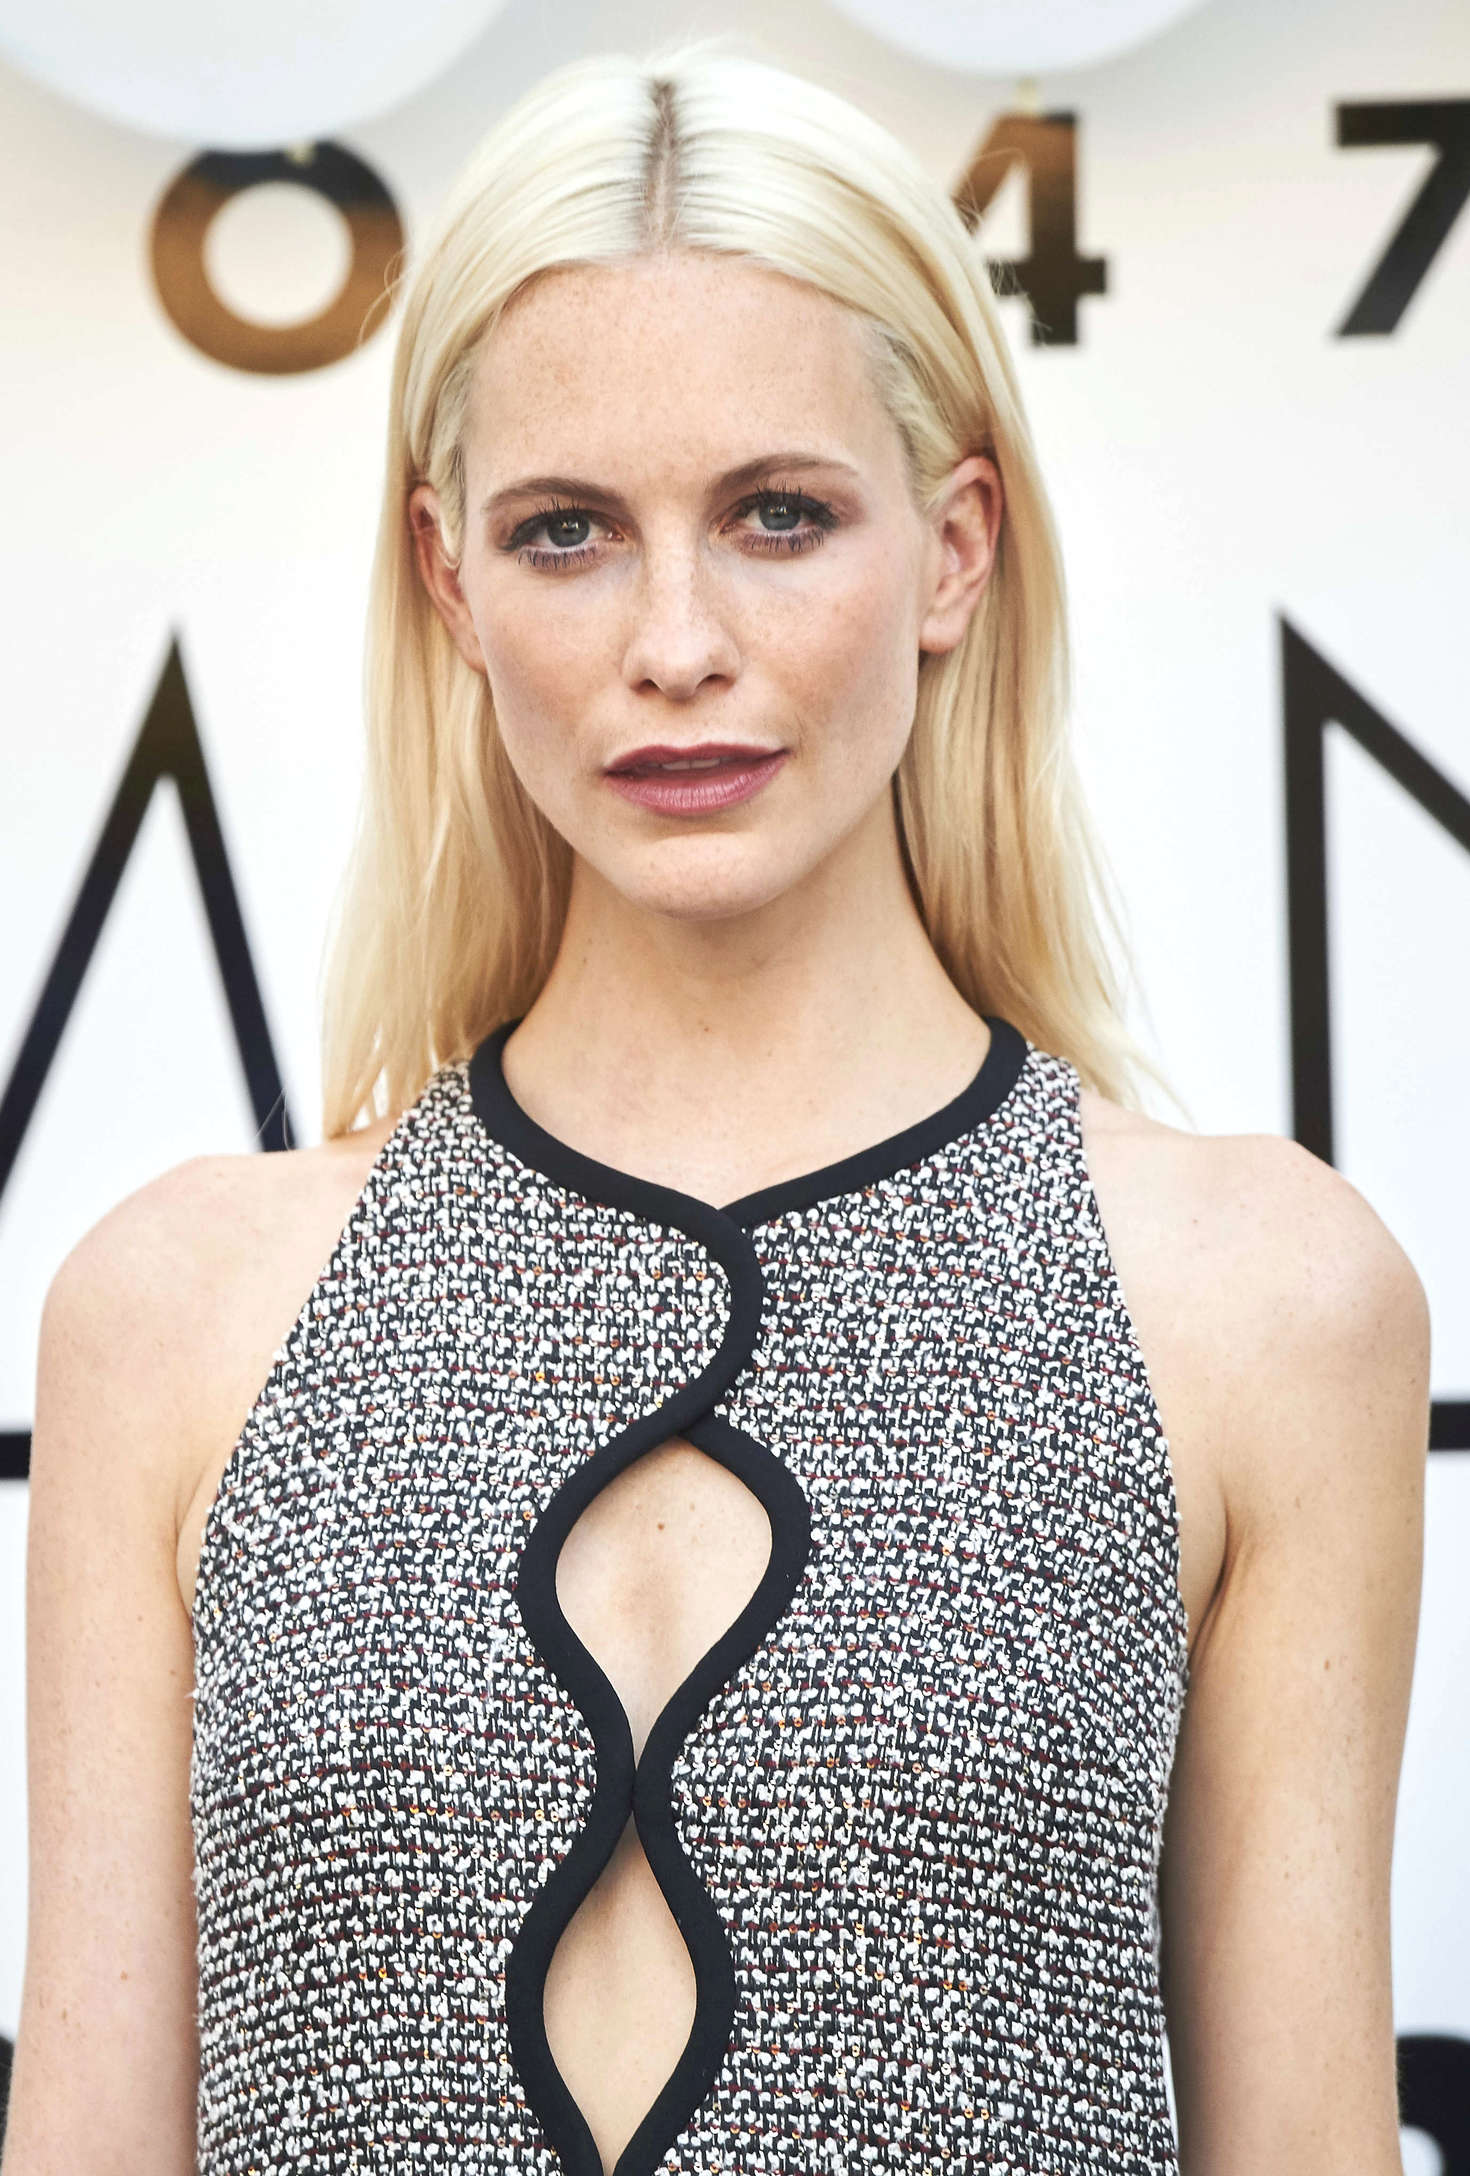 Poppy delevingne see through 47 Photos nudes (54 photos), Sideboobs Celebrites photo